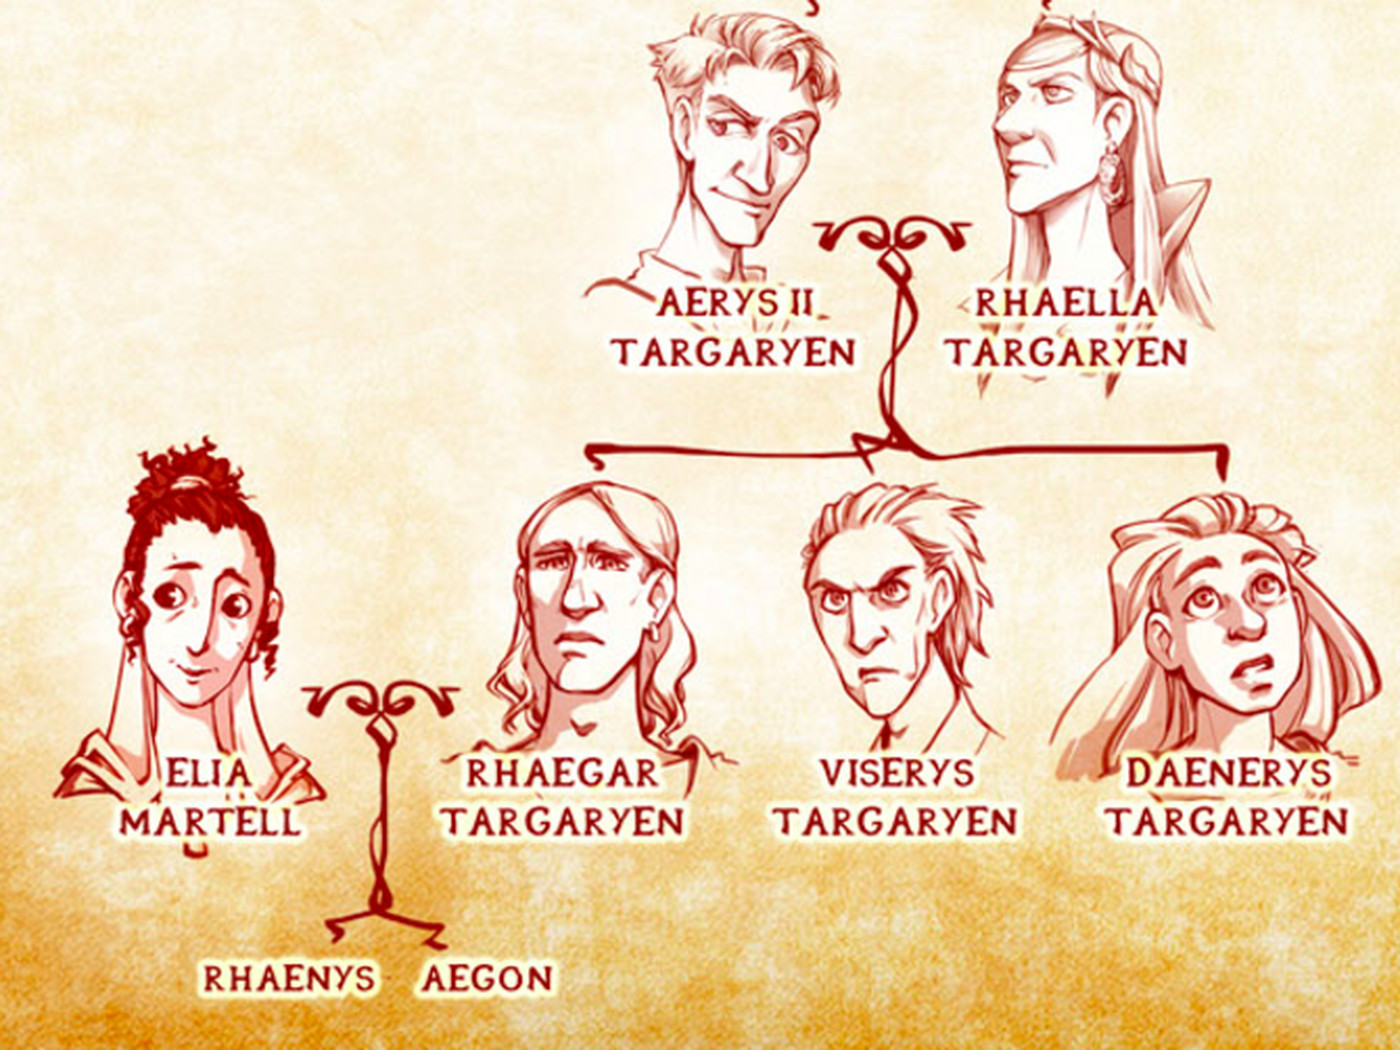 A Song Of Ice And Fire Map Pdf.This Targaryen Family Tree Helps Explain Game Of Thrones Confusing